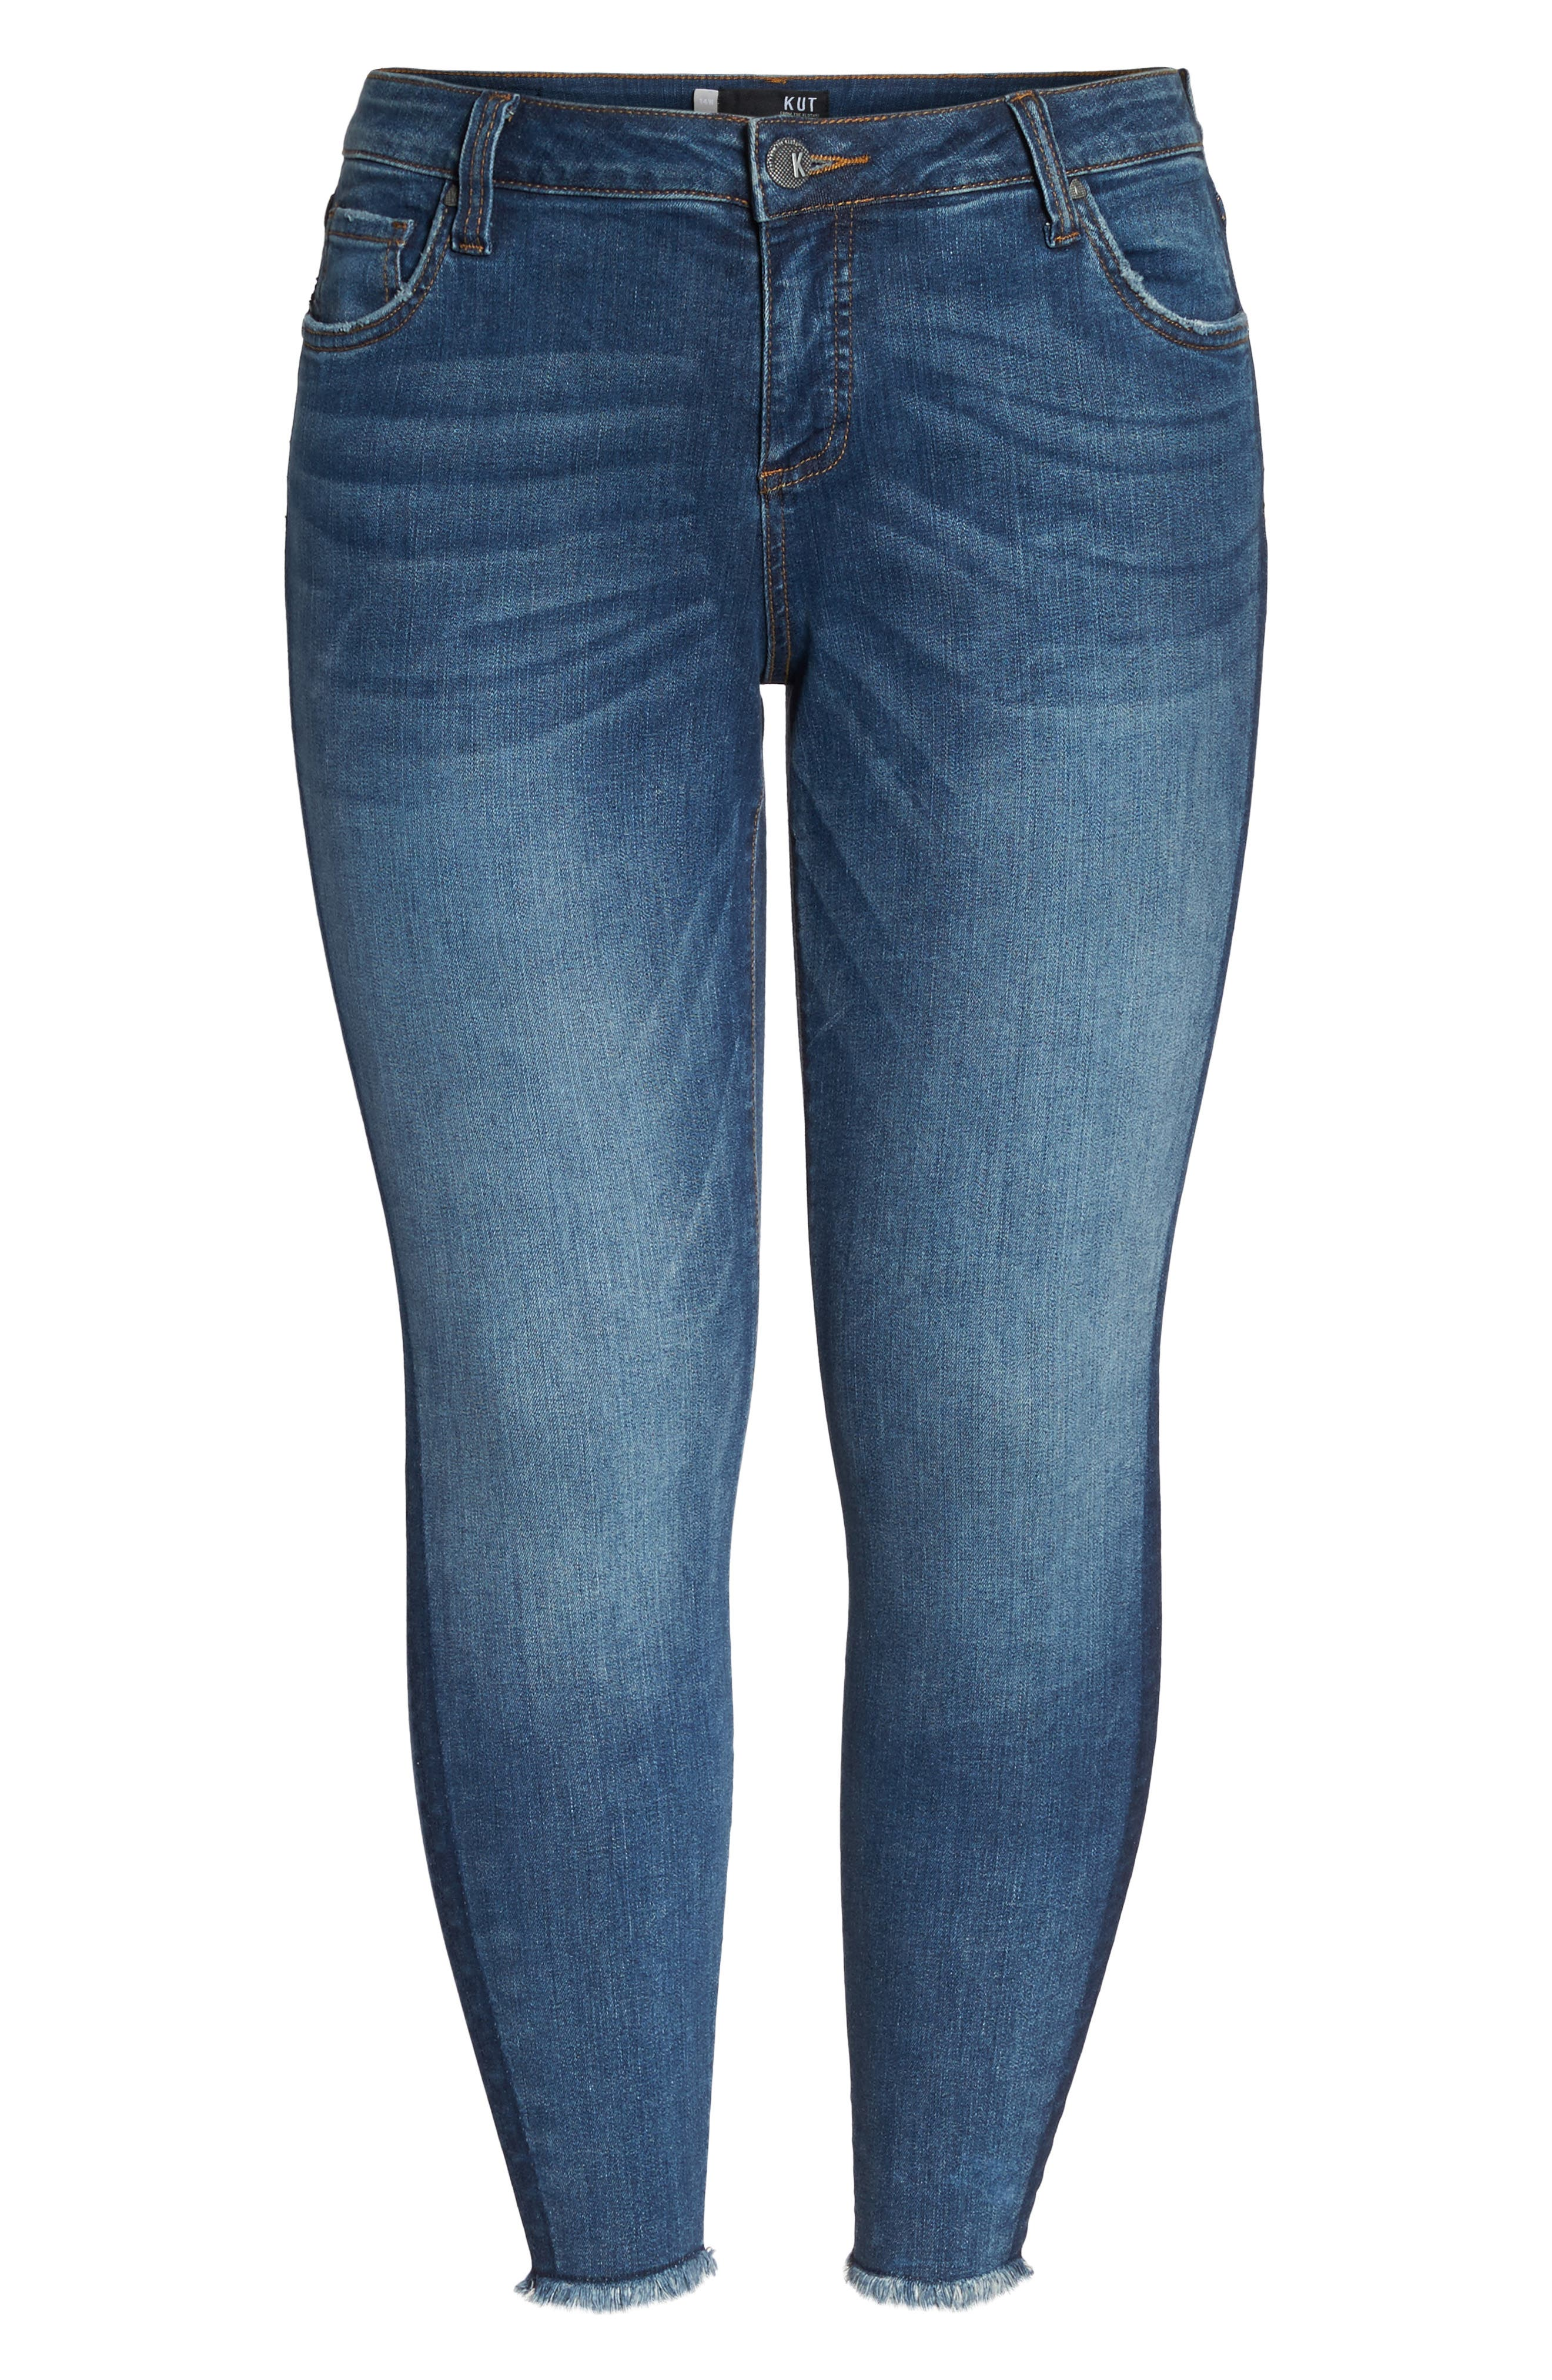 Connie Frayed Skinny Ankle Jeans,                             Alternate thumbnail 8, color,                             Prolific